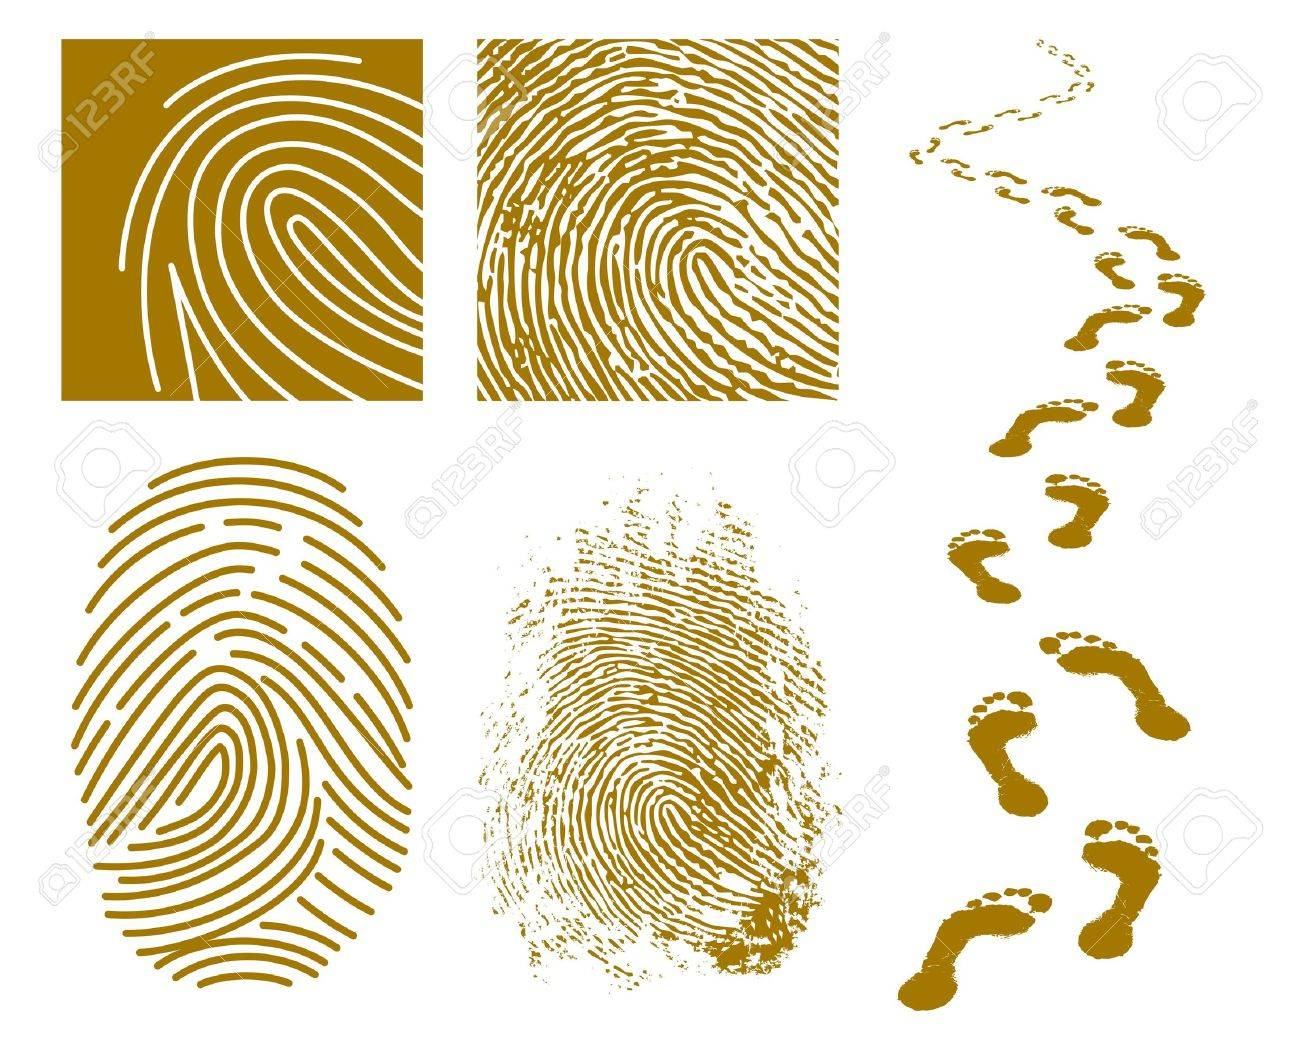 illustration of fingerprints and footprints on a white background Stock Vector - 7699045